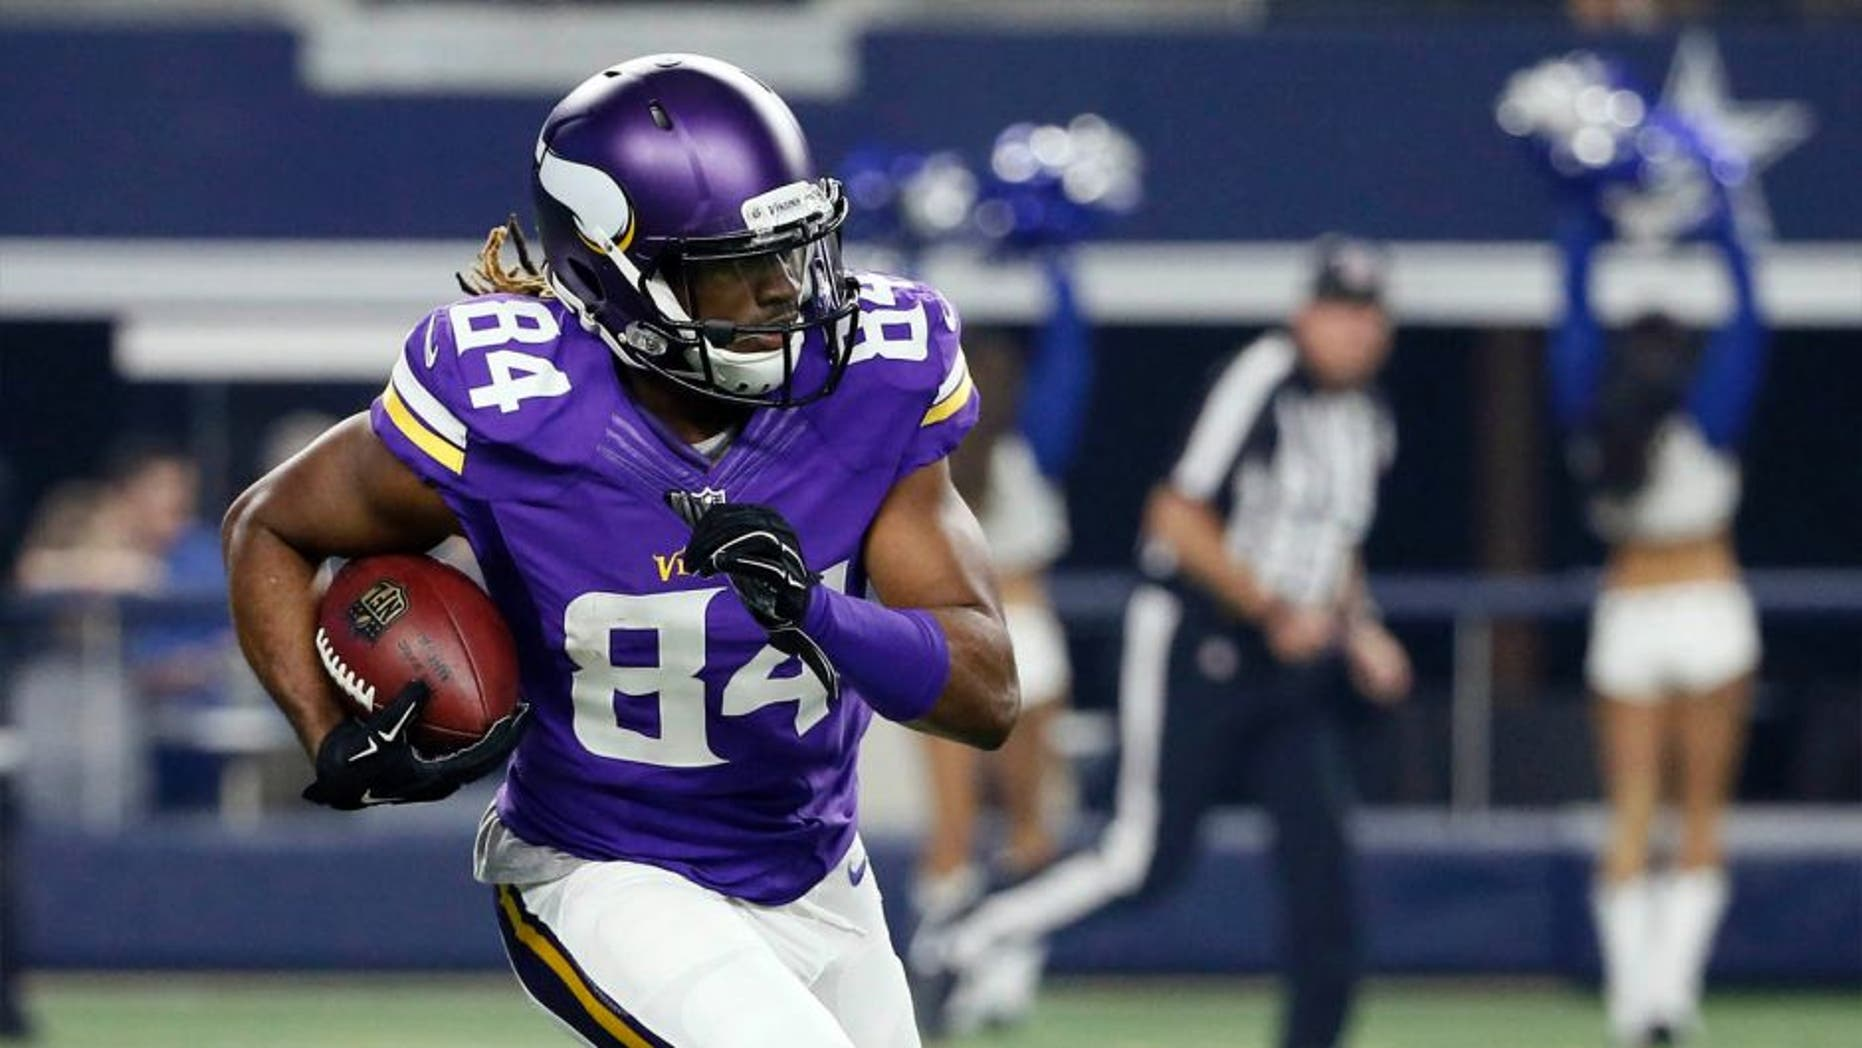 Minnesota Vikings wide receiver Cordarrelle Patterson makes a 107-yard touchdown on a kick-off return against the Dallas Cowboys during the first half of a preseason game Saturday, Aug. 29, 2015, in Arlington, Texas.